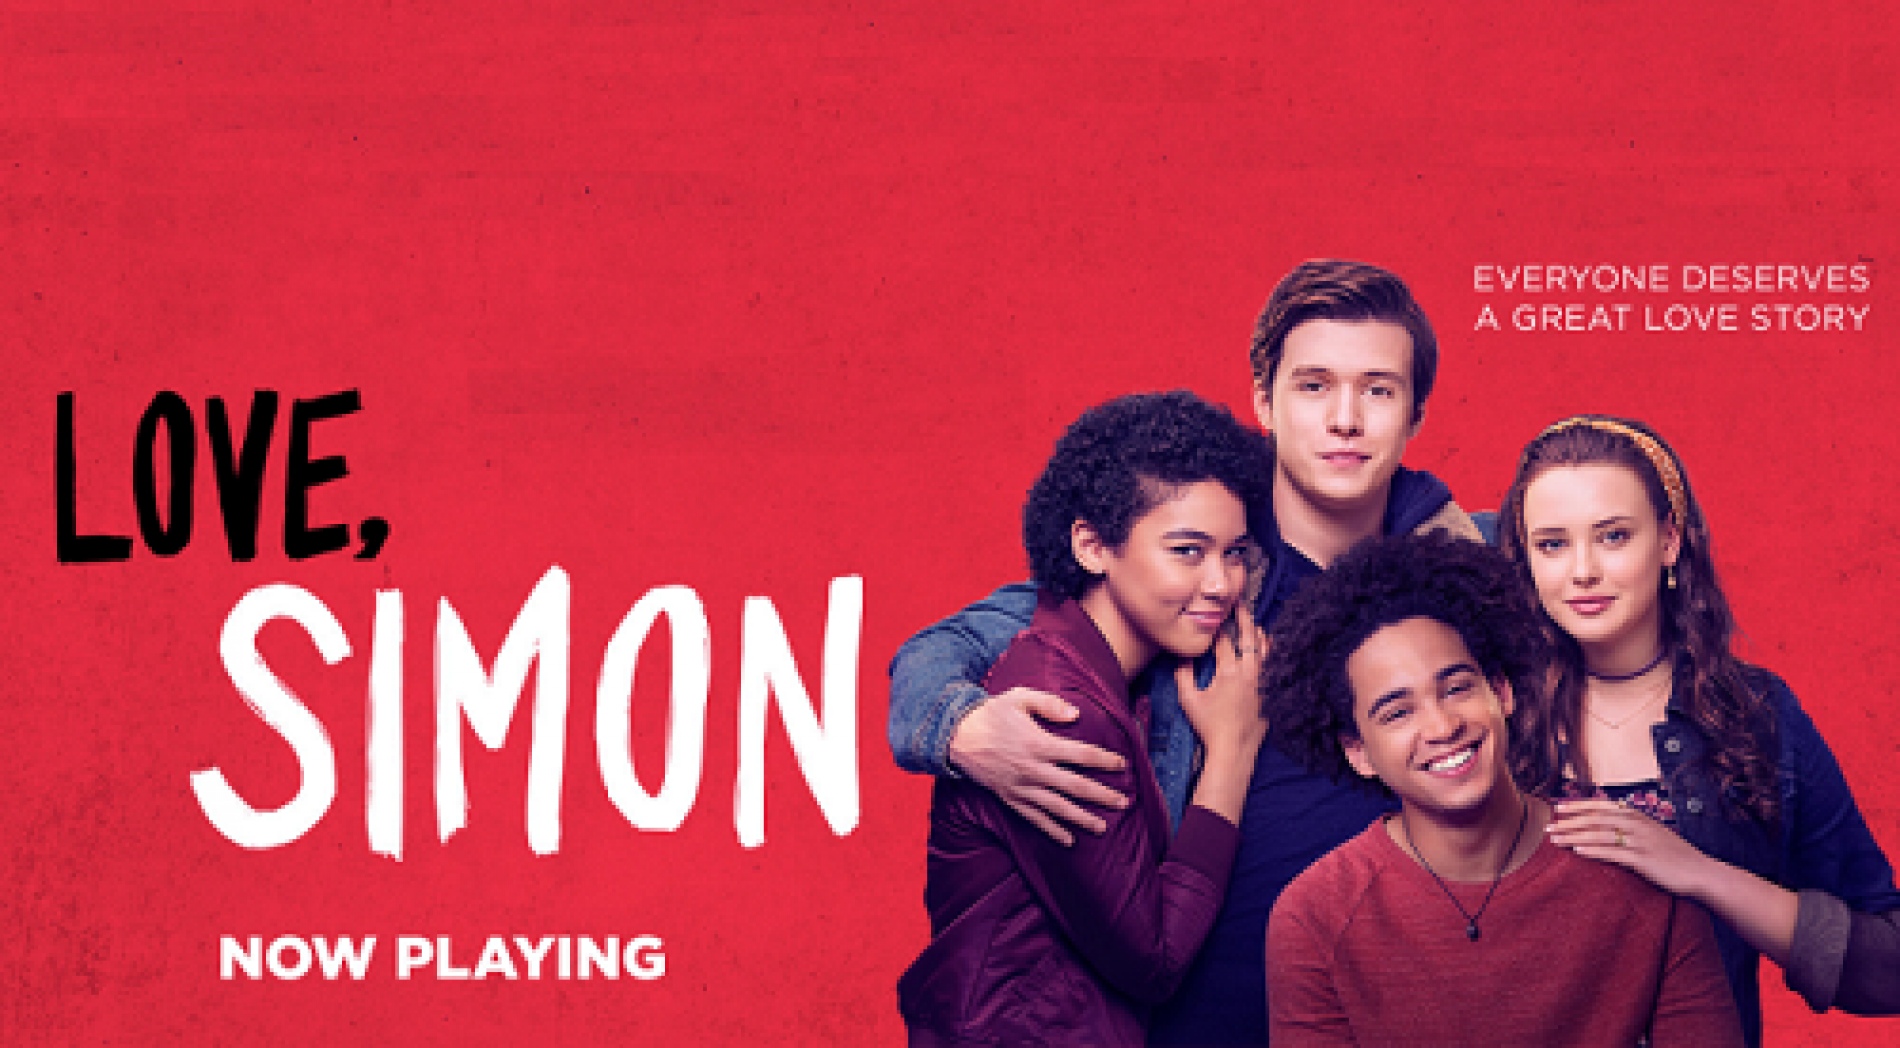 """""""Why doesn't he get AIDS?"""" An antigay evangelist expresses his disapproval of teen gay movie, 'Love, Simon'"""